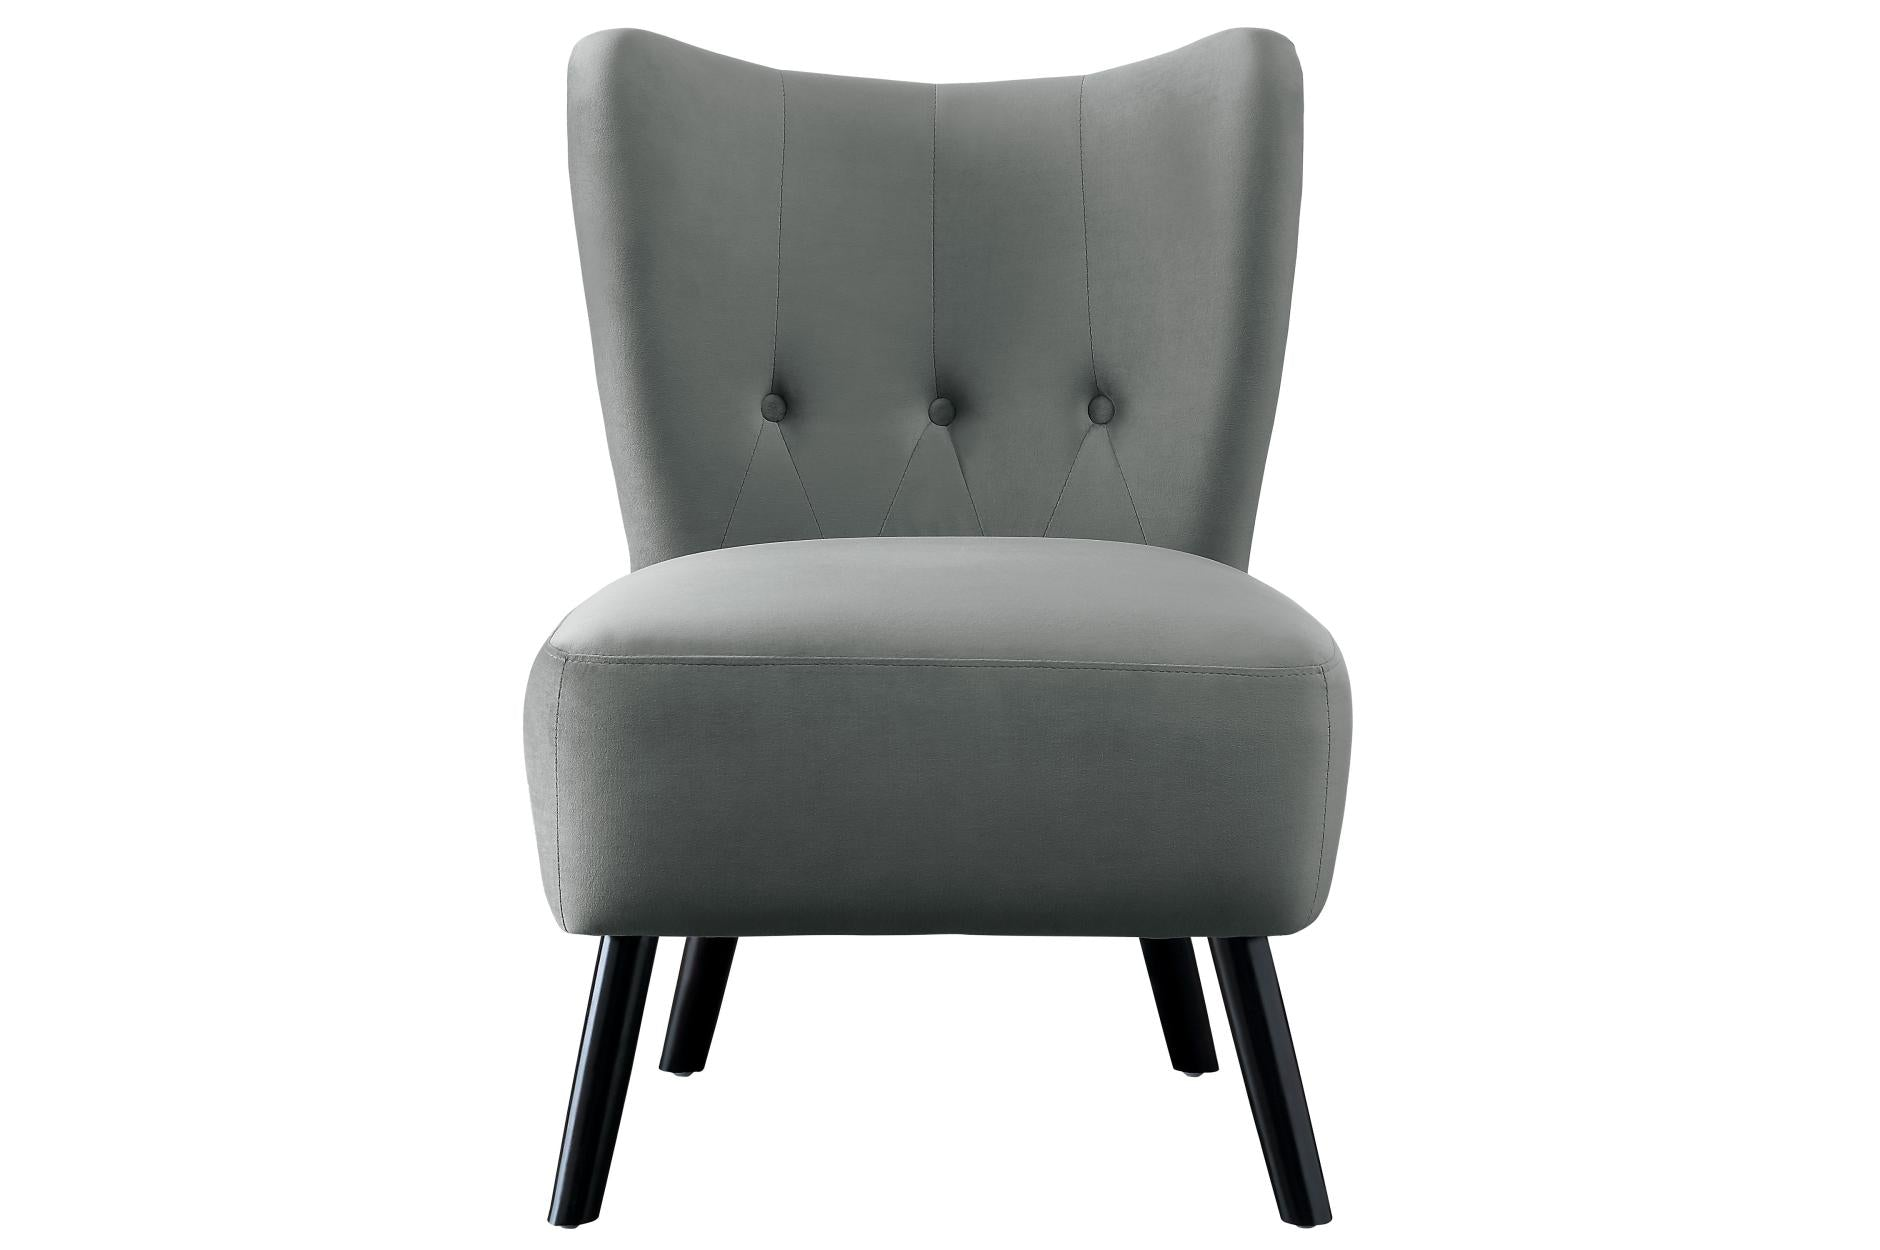 Admirable Imani Gray Accent Chair Gmtry Best Dining Table And Chair Ideas Images Gmtryco